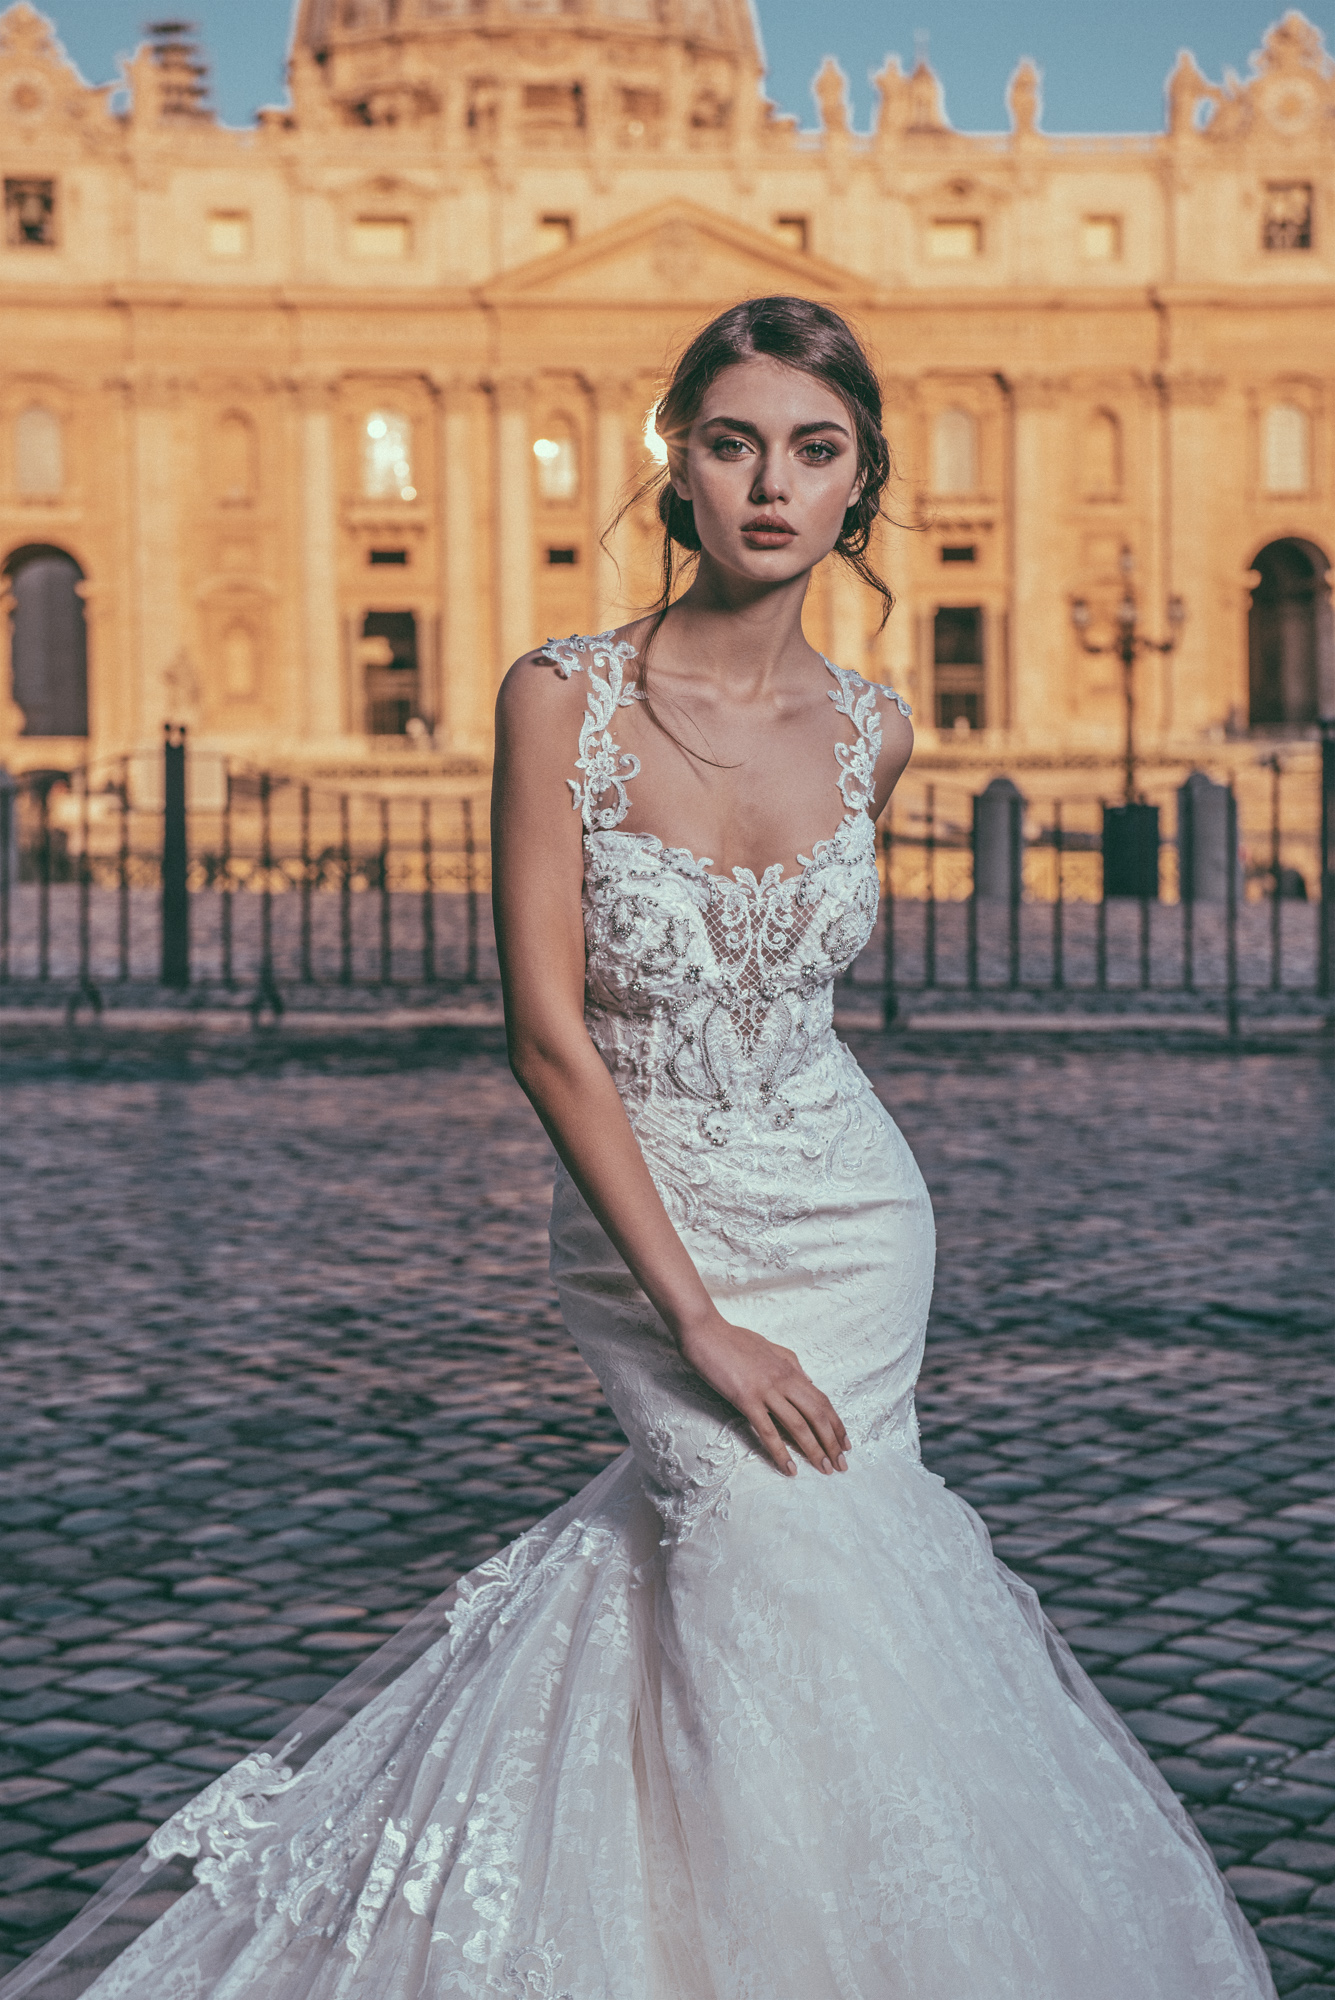 JK Couture #13 - This long sleeve lace mermaid wedding gown features a detachable skirt and is embellished with crystals and pearls. The illusion back leads into an exposed zipper with crystal beading and buttons going up the back. Also features a royal cathedral train.